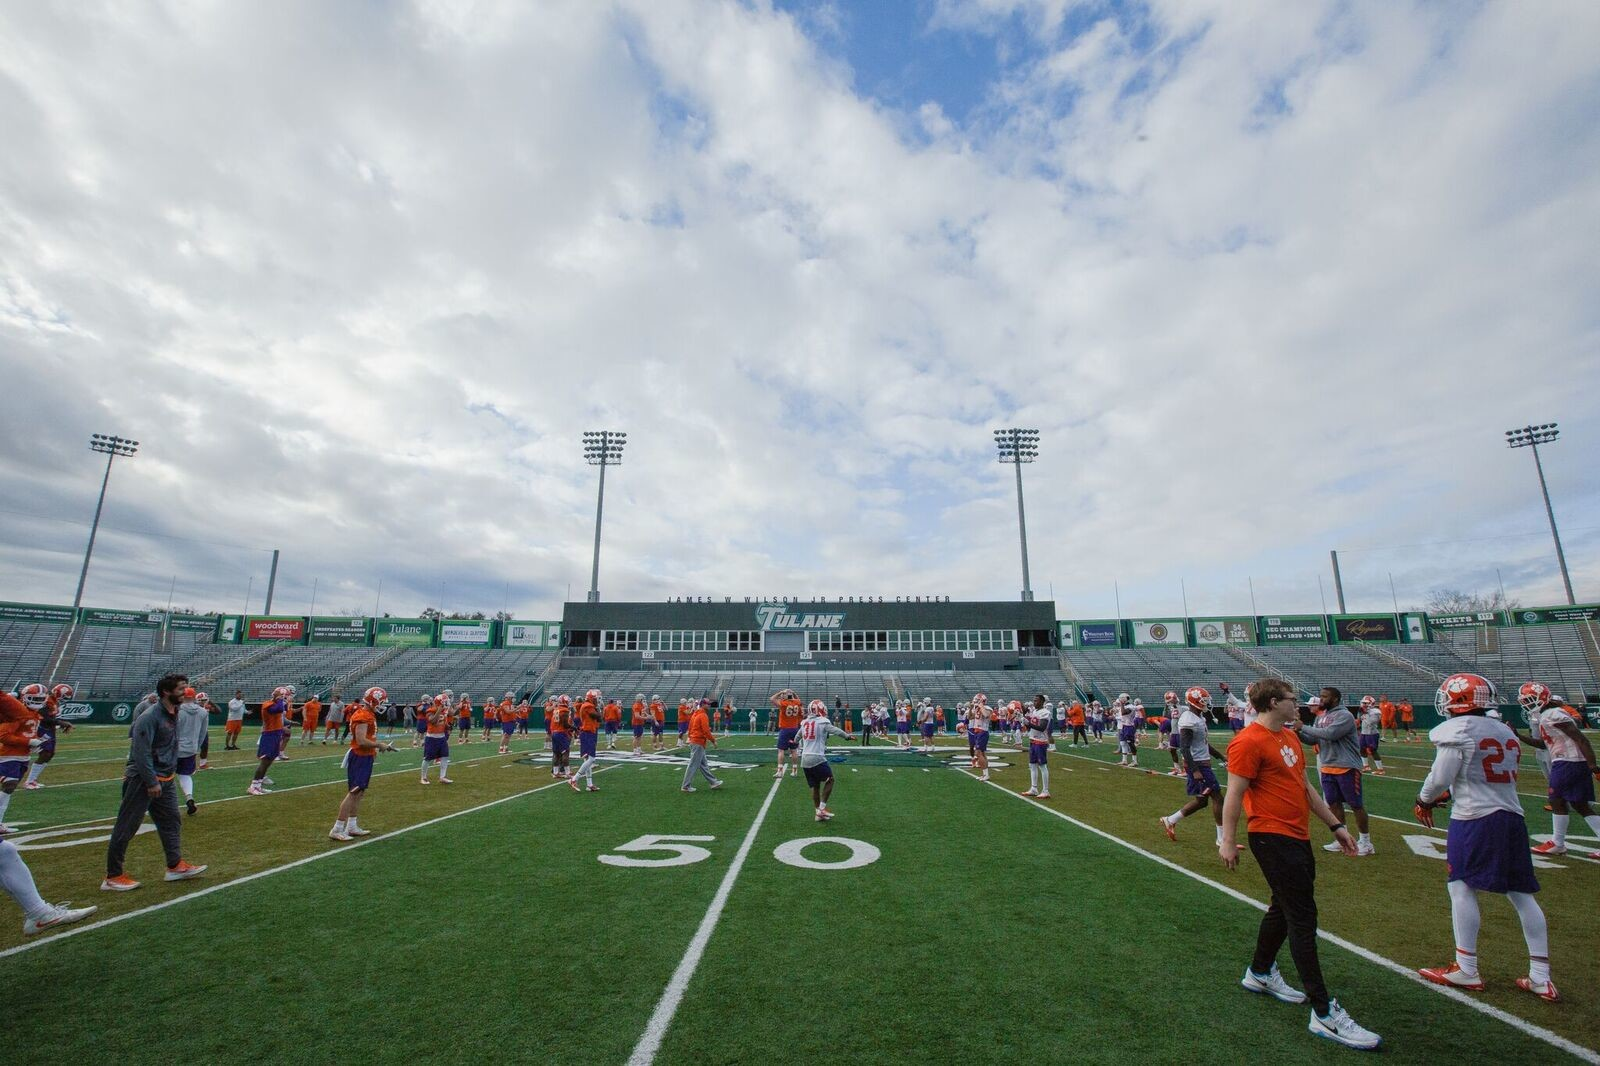 The Clemson football team practices on Saturday at Tulane University in preparation for Monday's Sugar Bowl. The defending national champion Tigers will face Alabama for the third straight year, this time in a national semifinal.